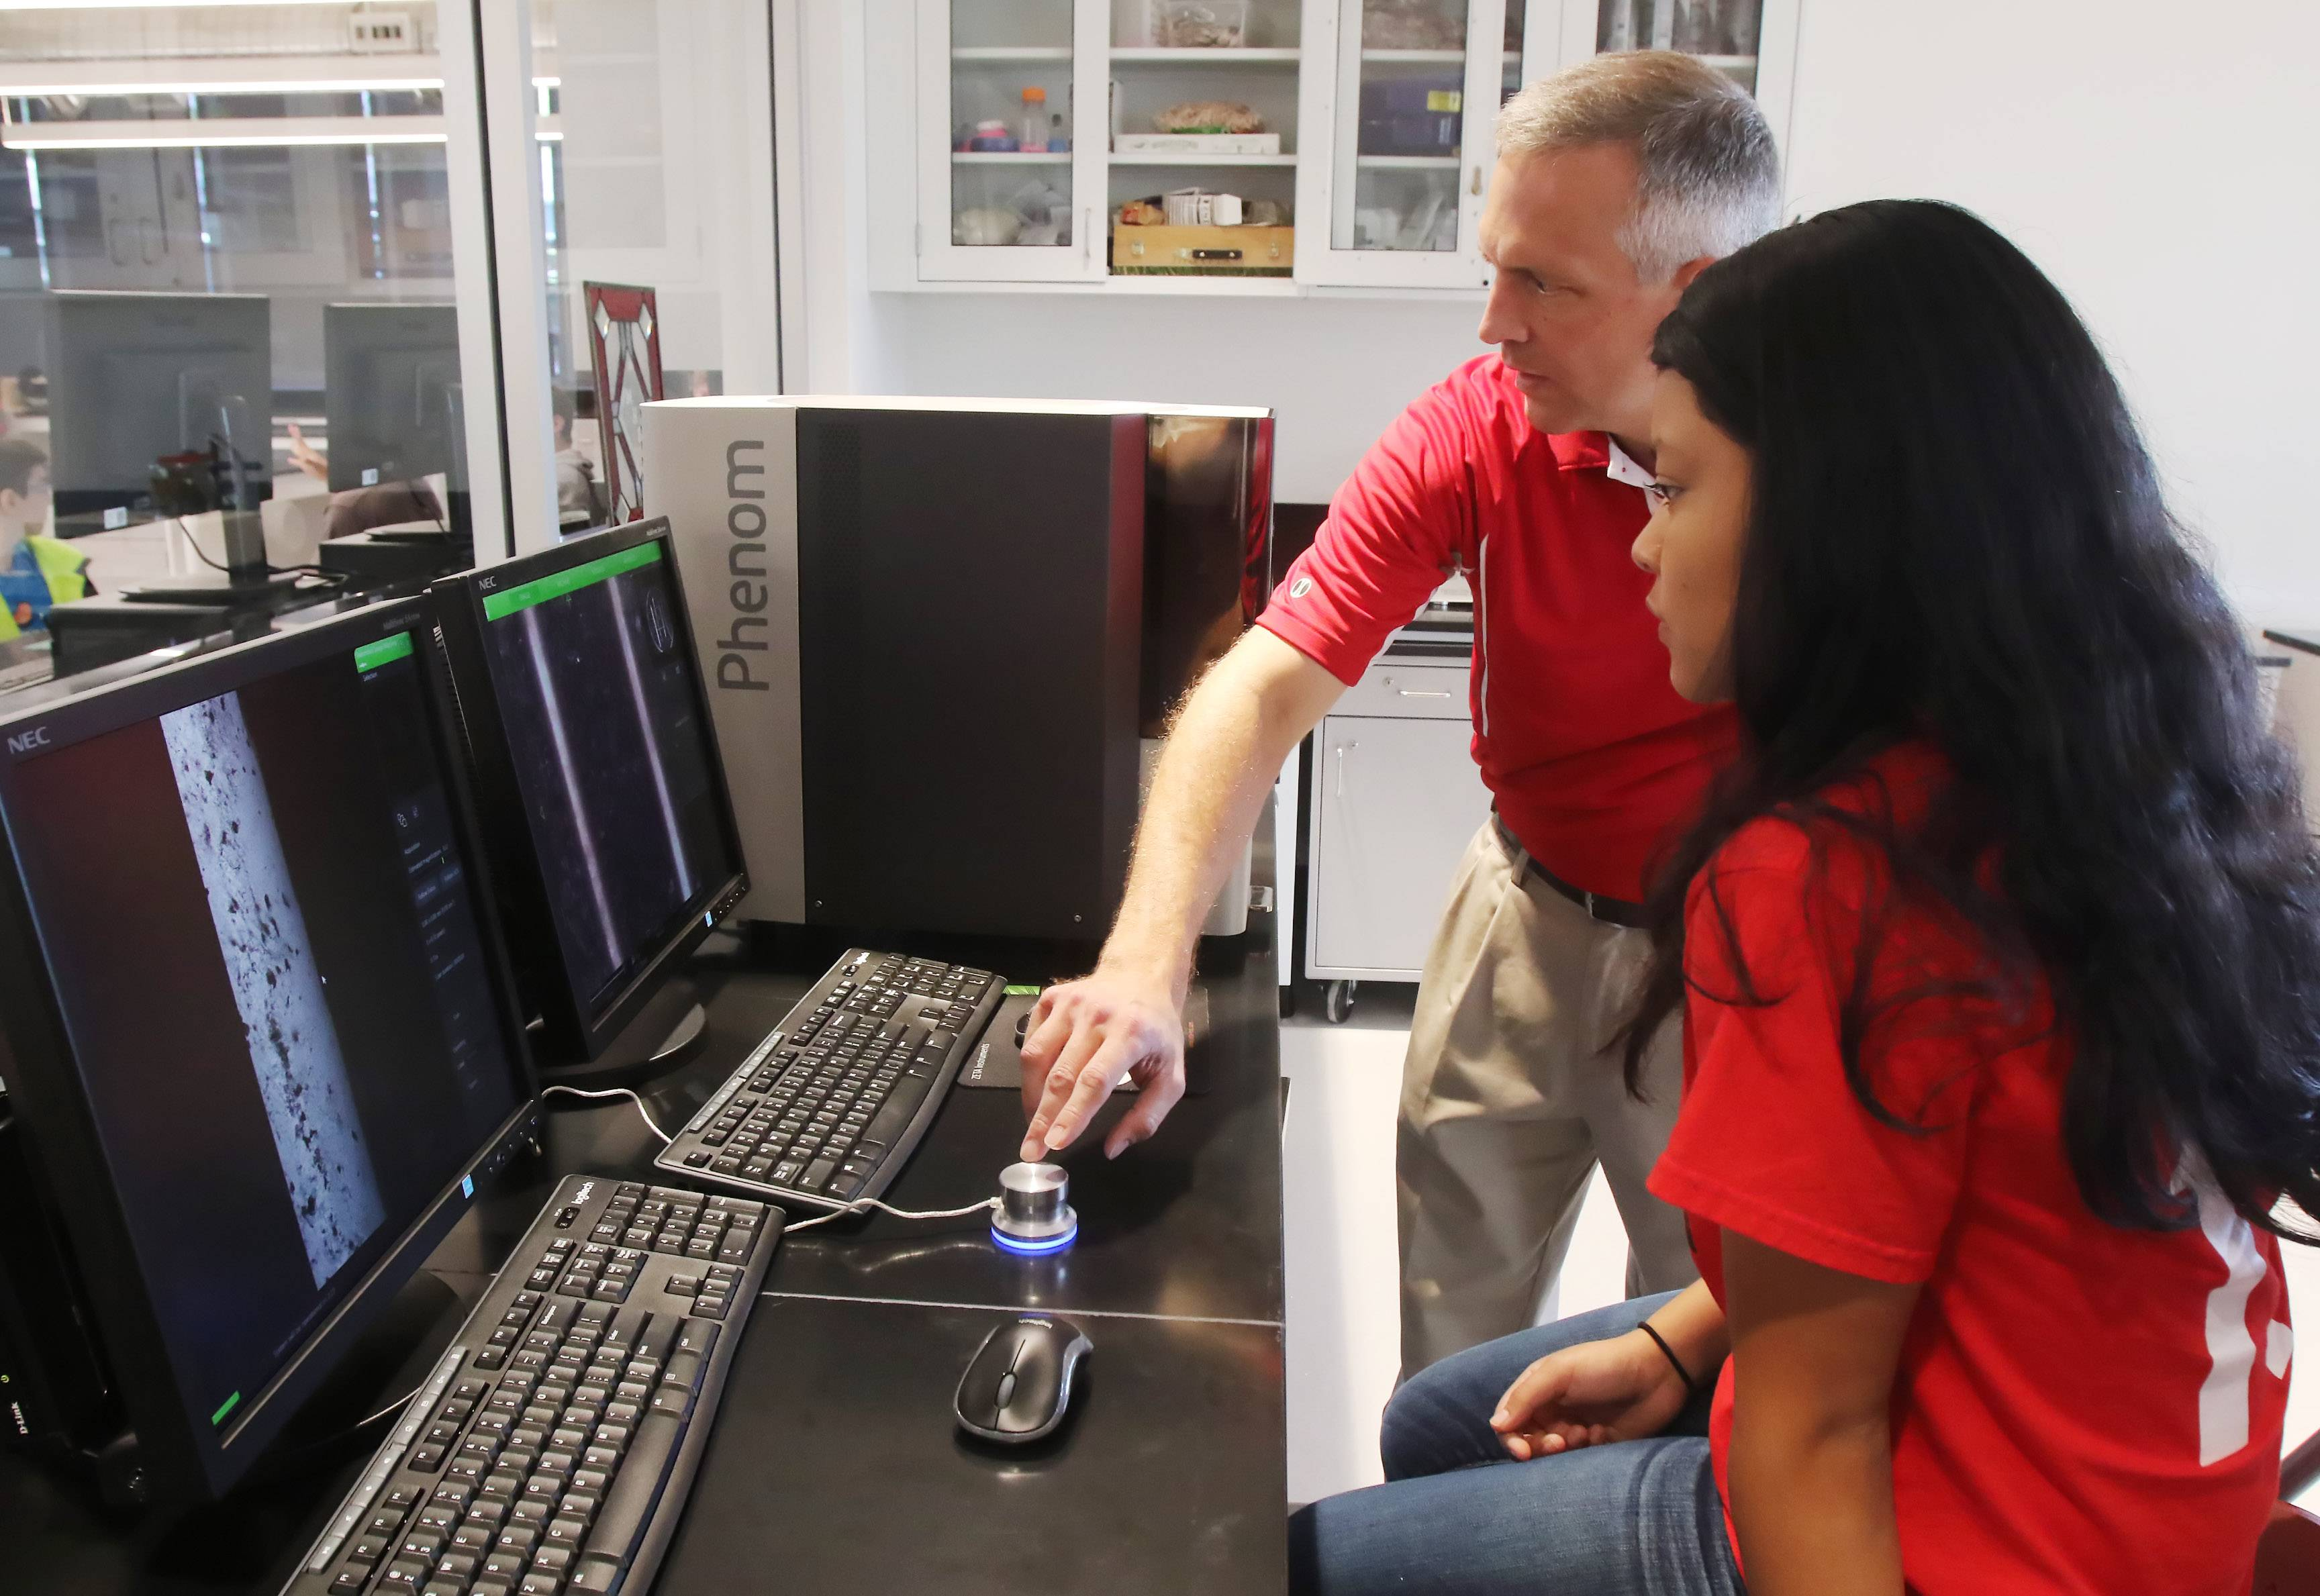 Mundelein High students, staff impressed by new STEM wing